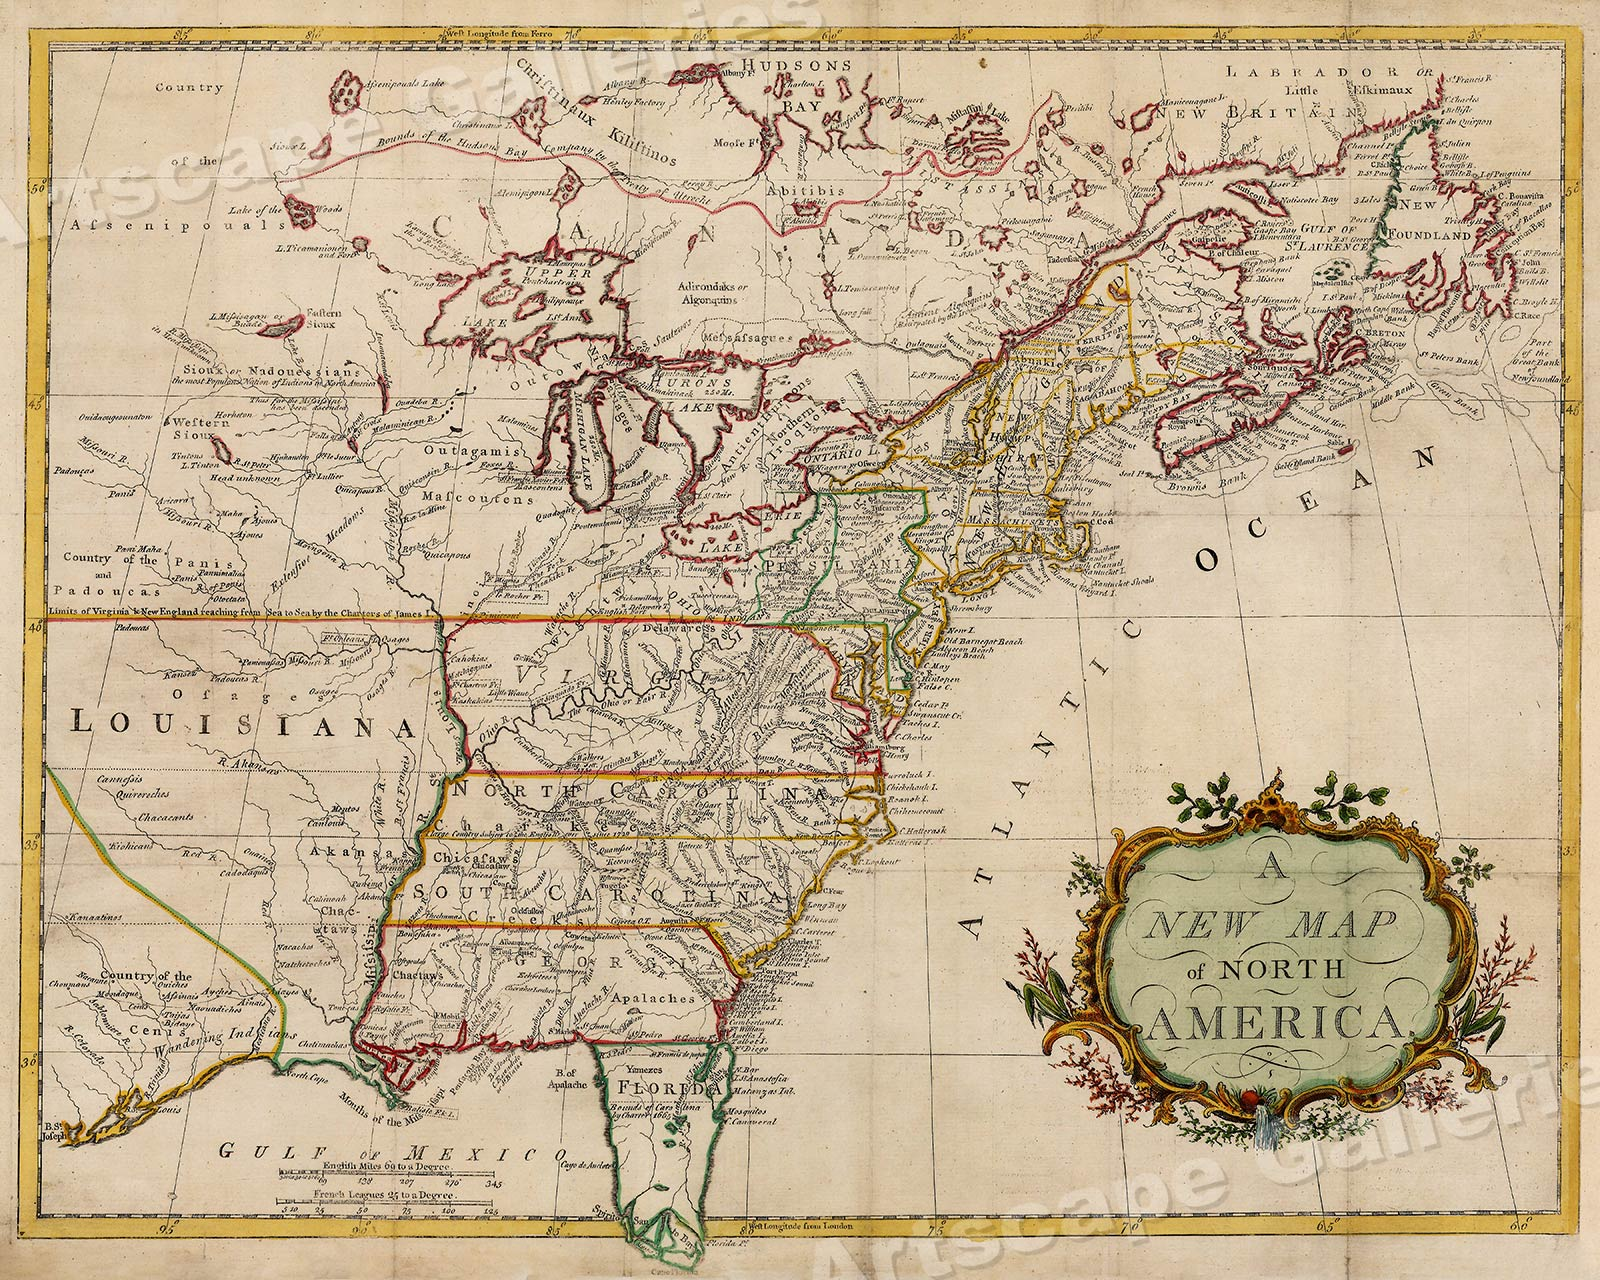 New Map Of America.Details About A New Map Of North America 1760s Vintage Style Early Us Map 20x24